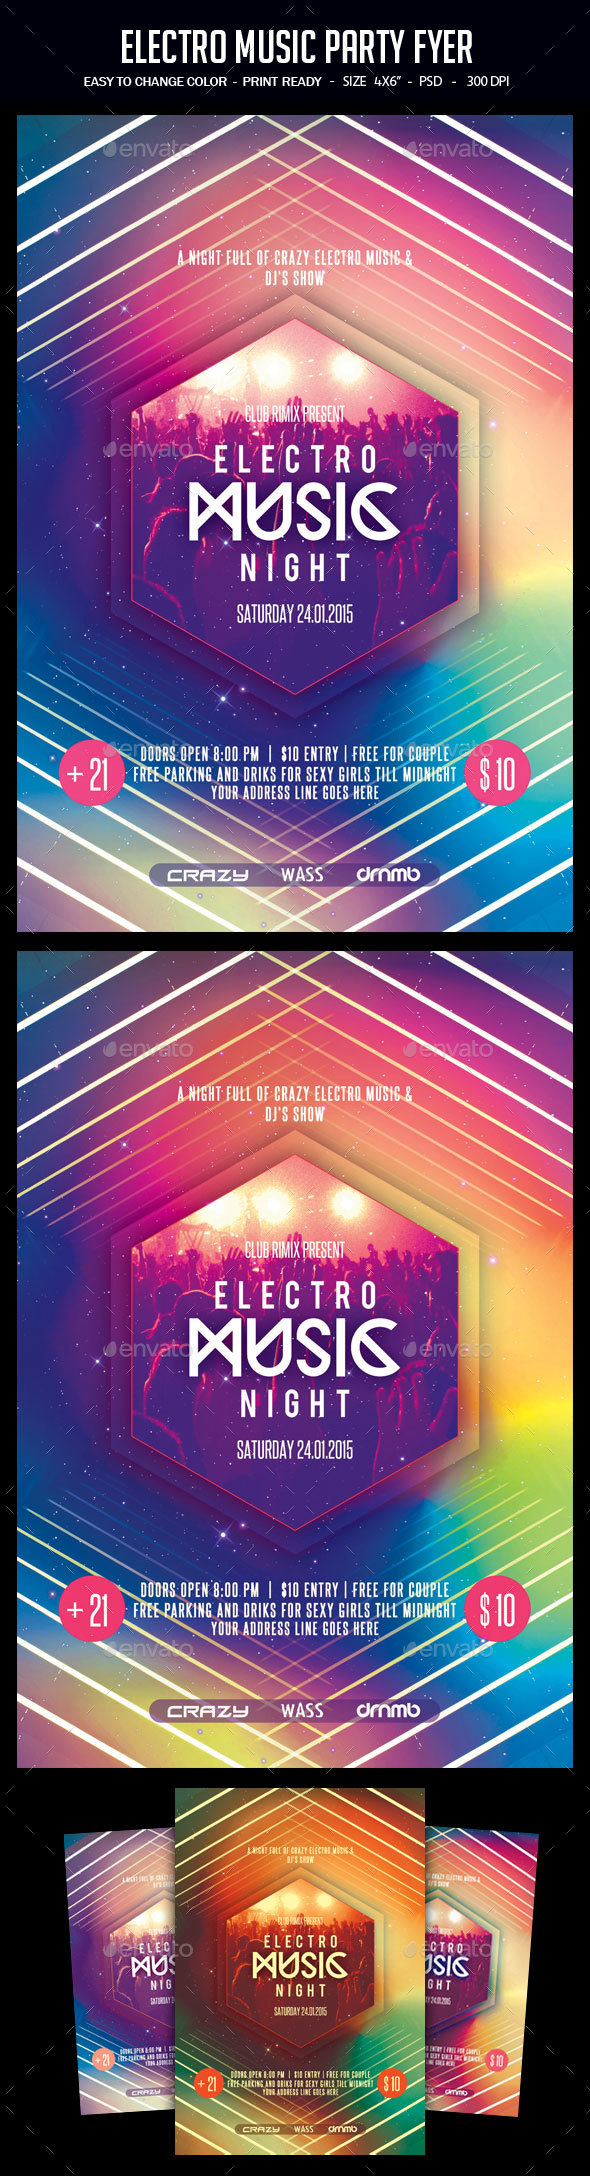 Dj and Electro Dance Graphics, Designs & Templates